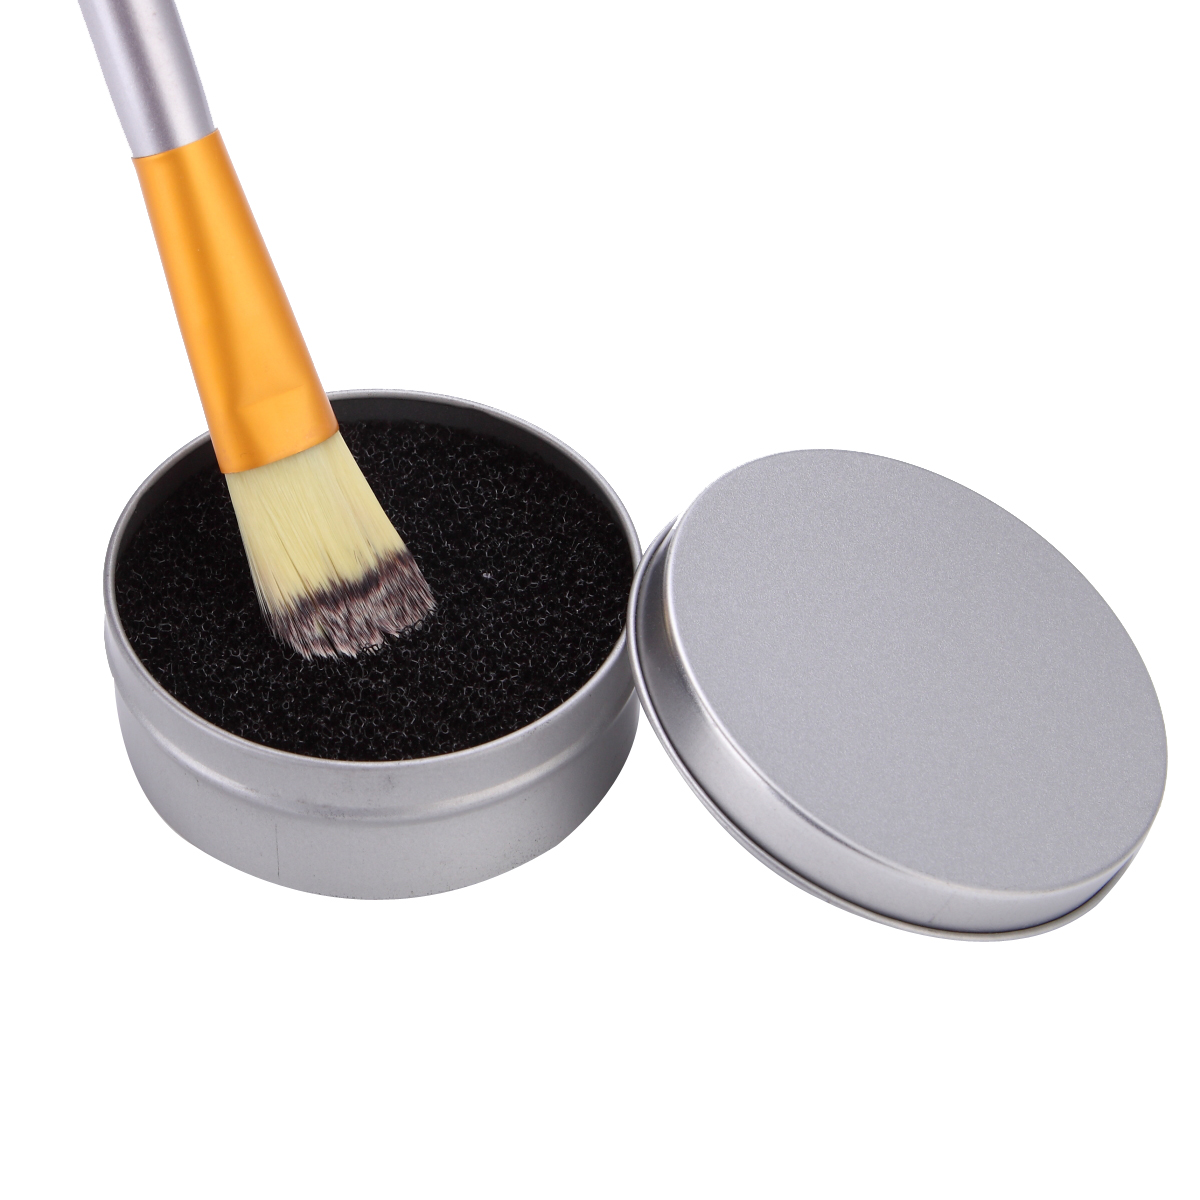 Portable Makeup Brush Sponge Cleaner - Quick Dust Box